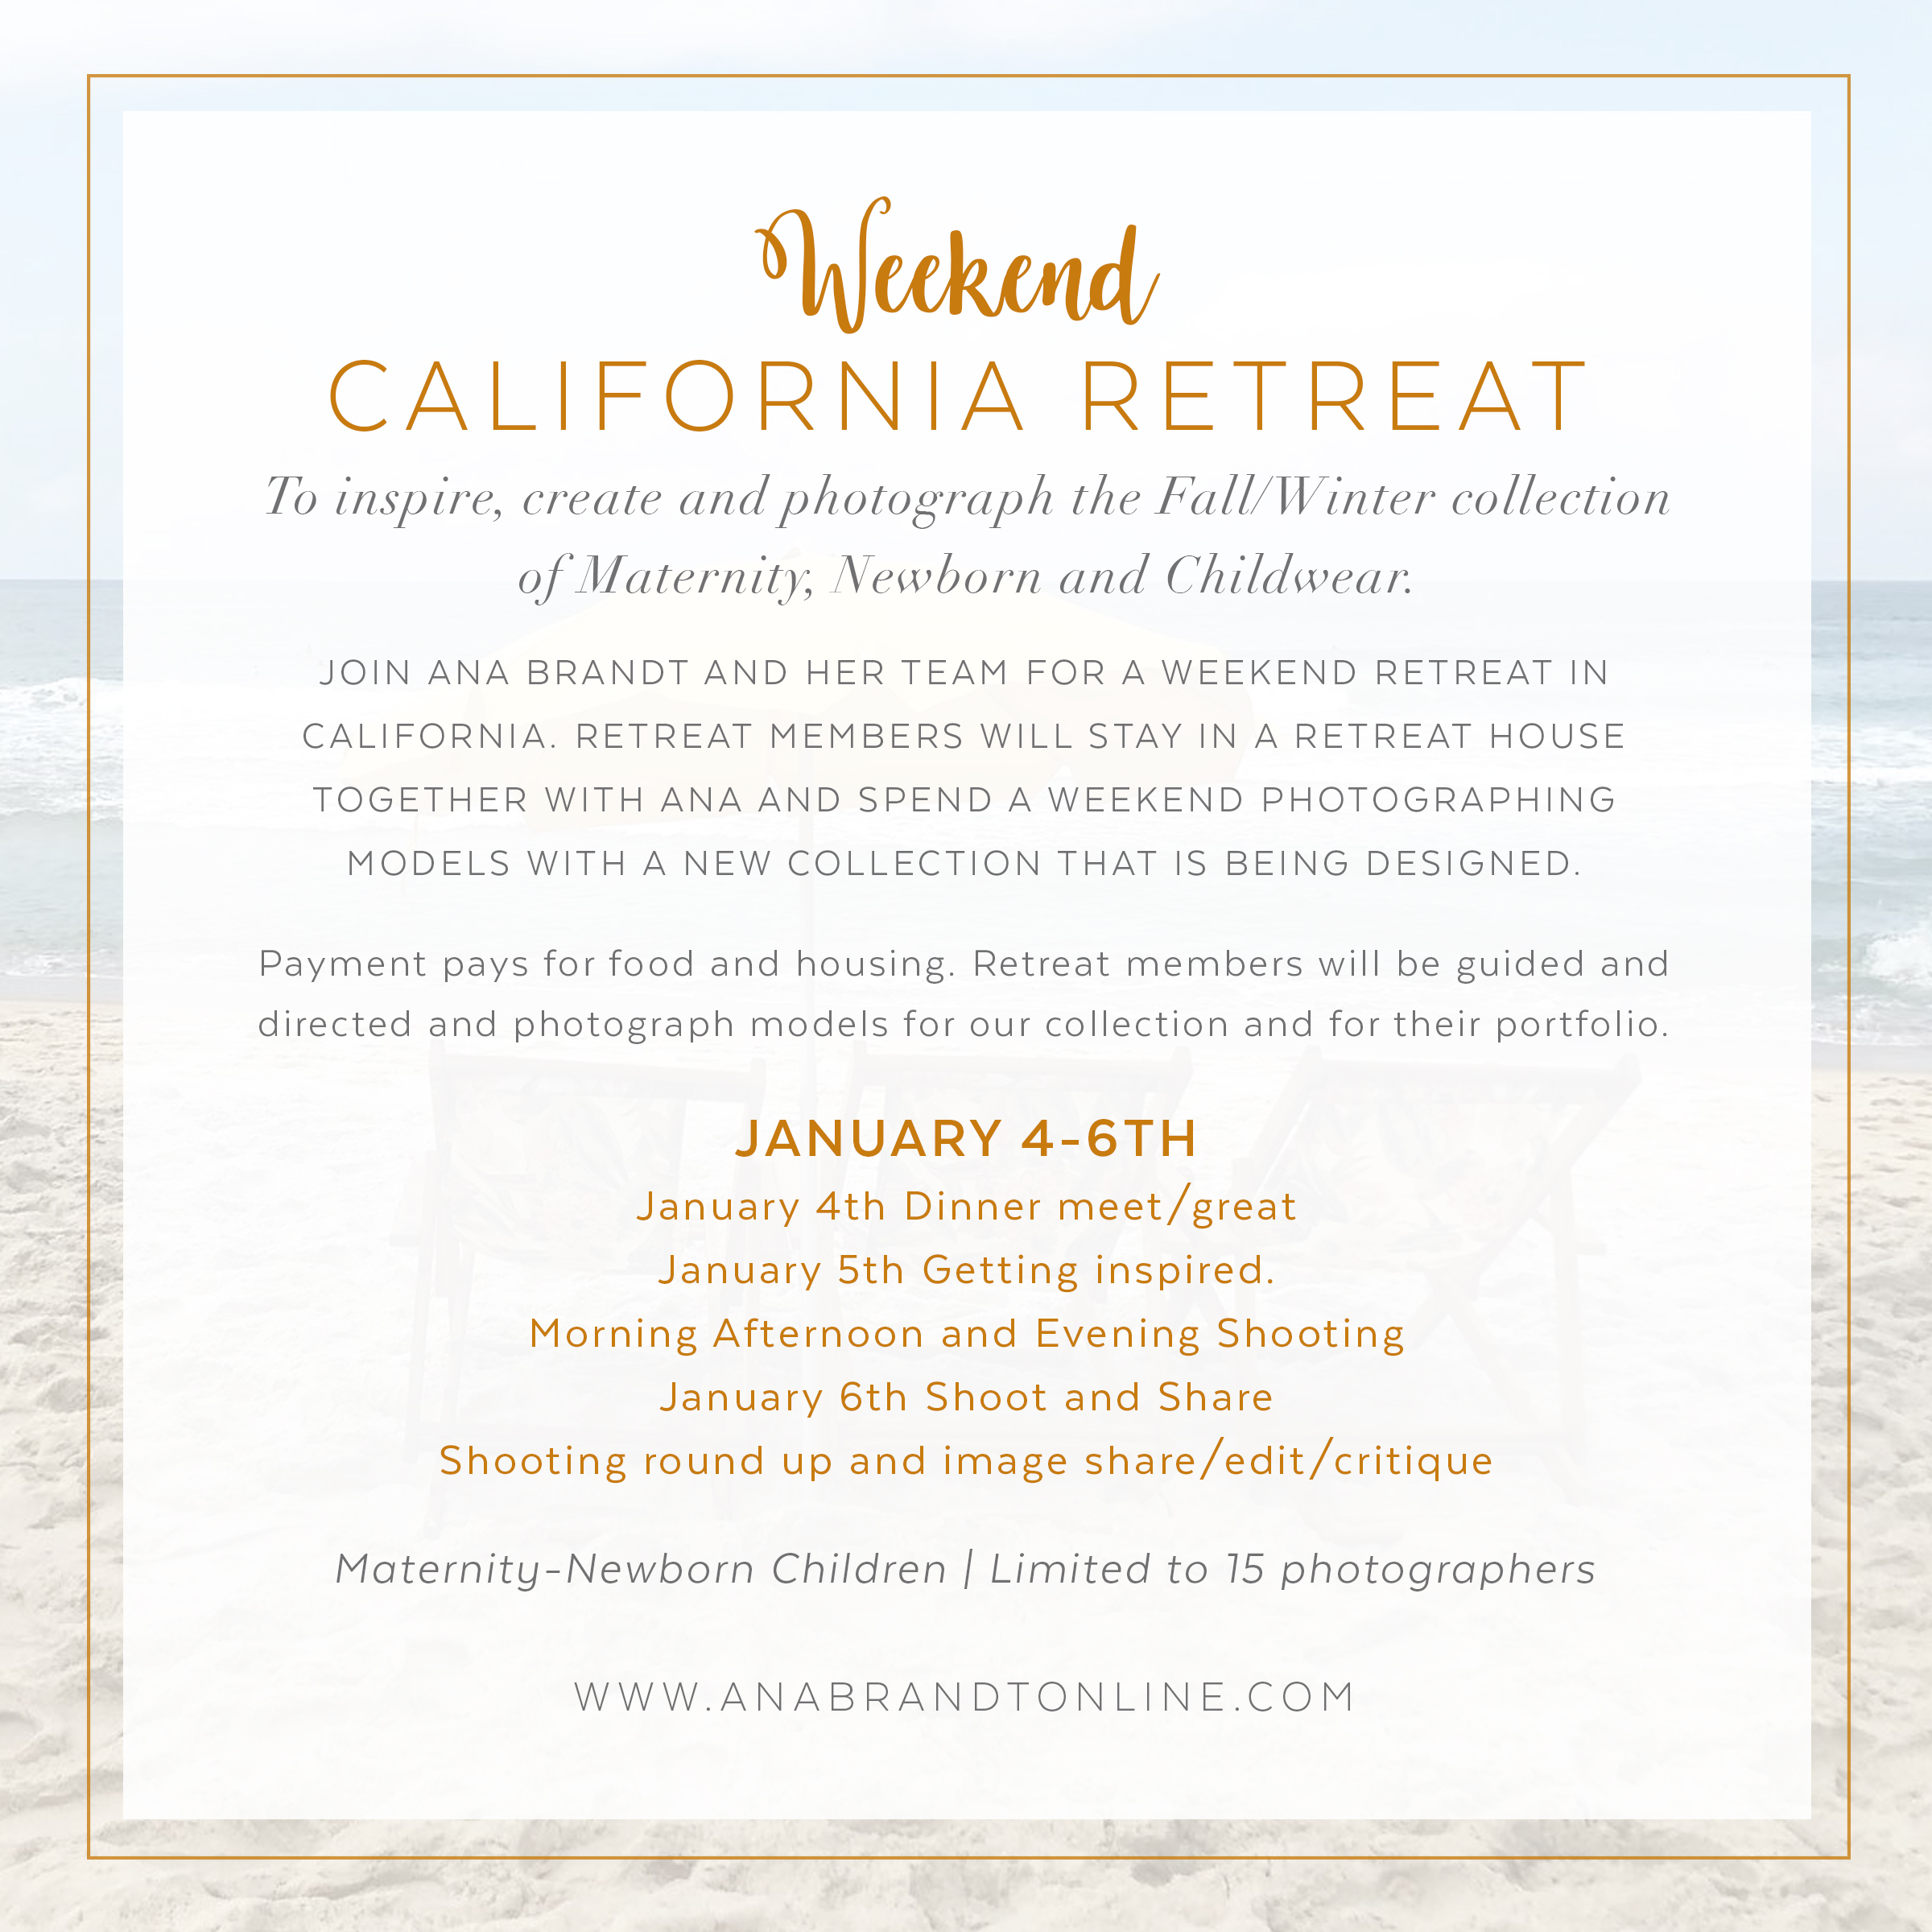 Ana Brandt Workshops California Retreat With Ana Brandt